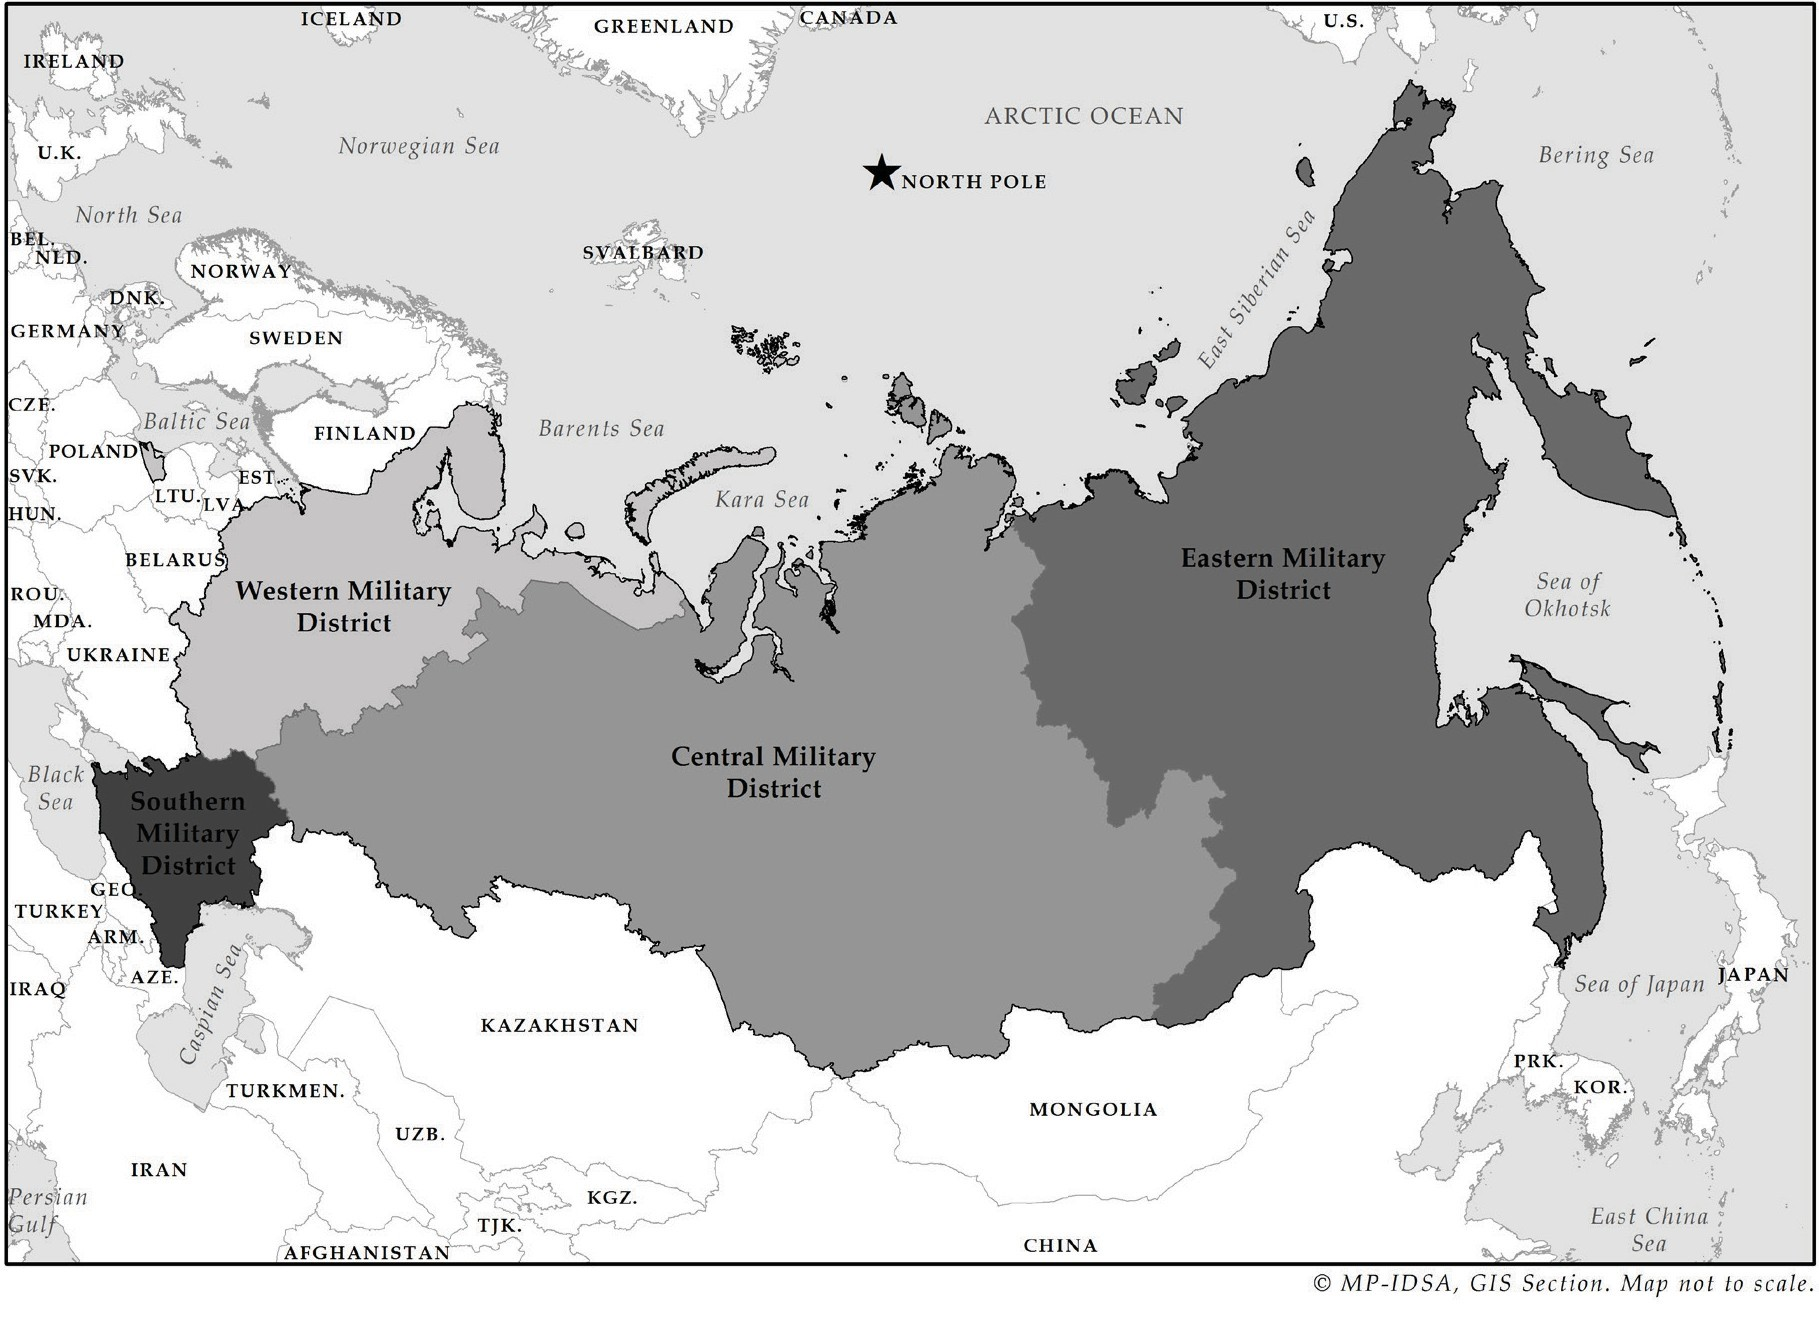 Russia's Military Districts